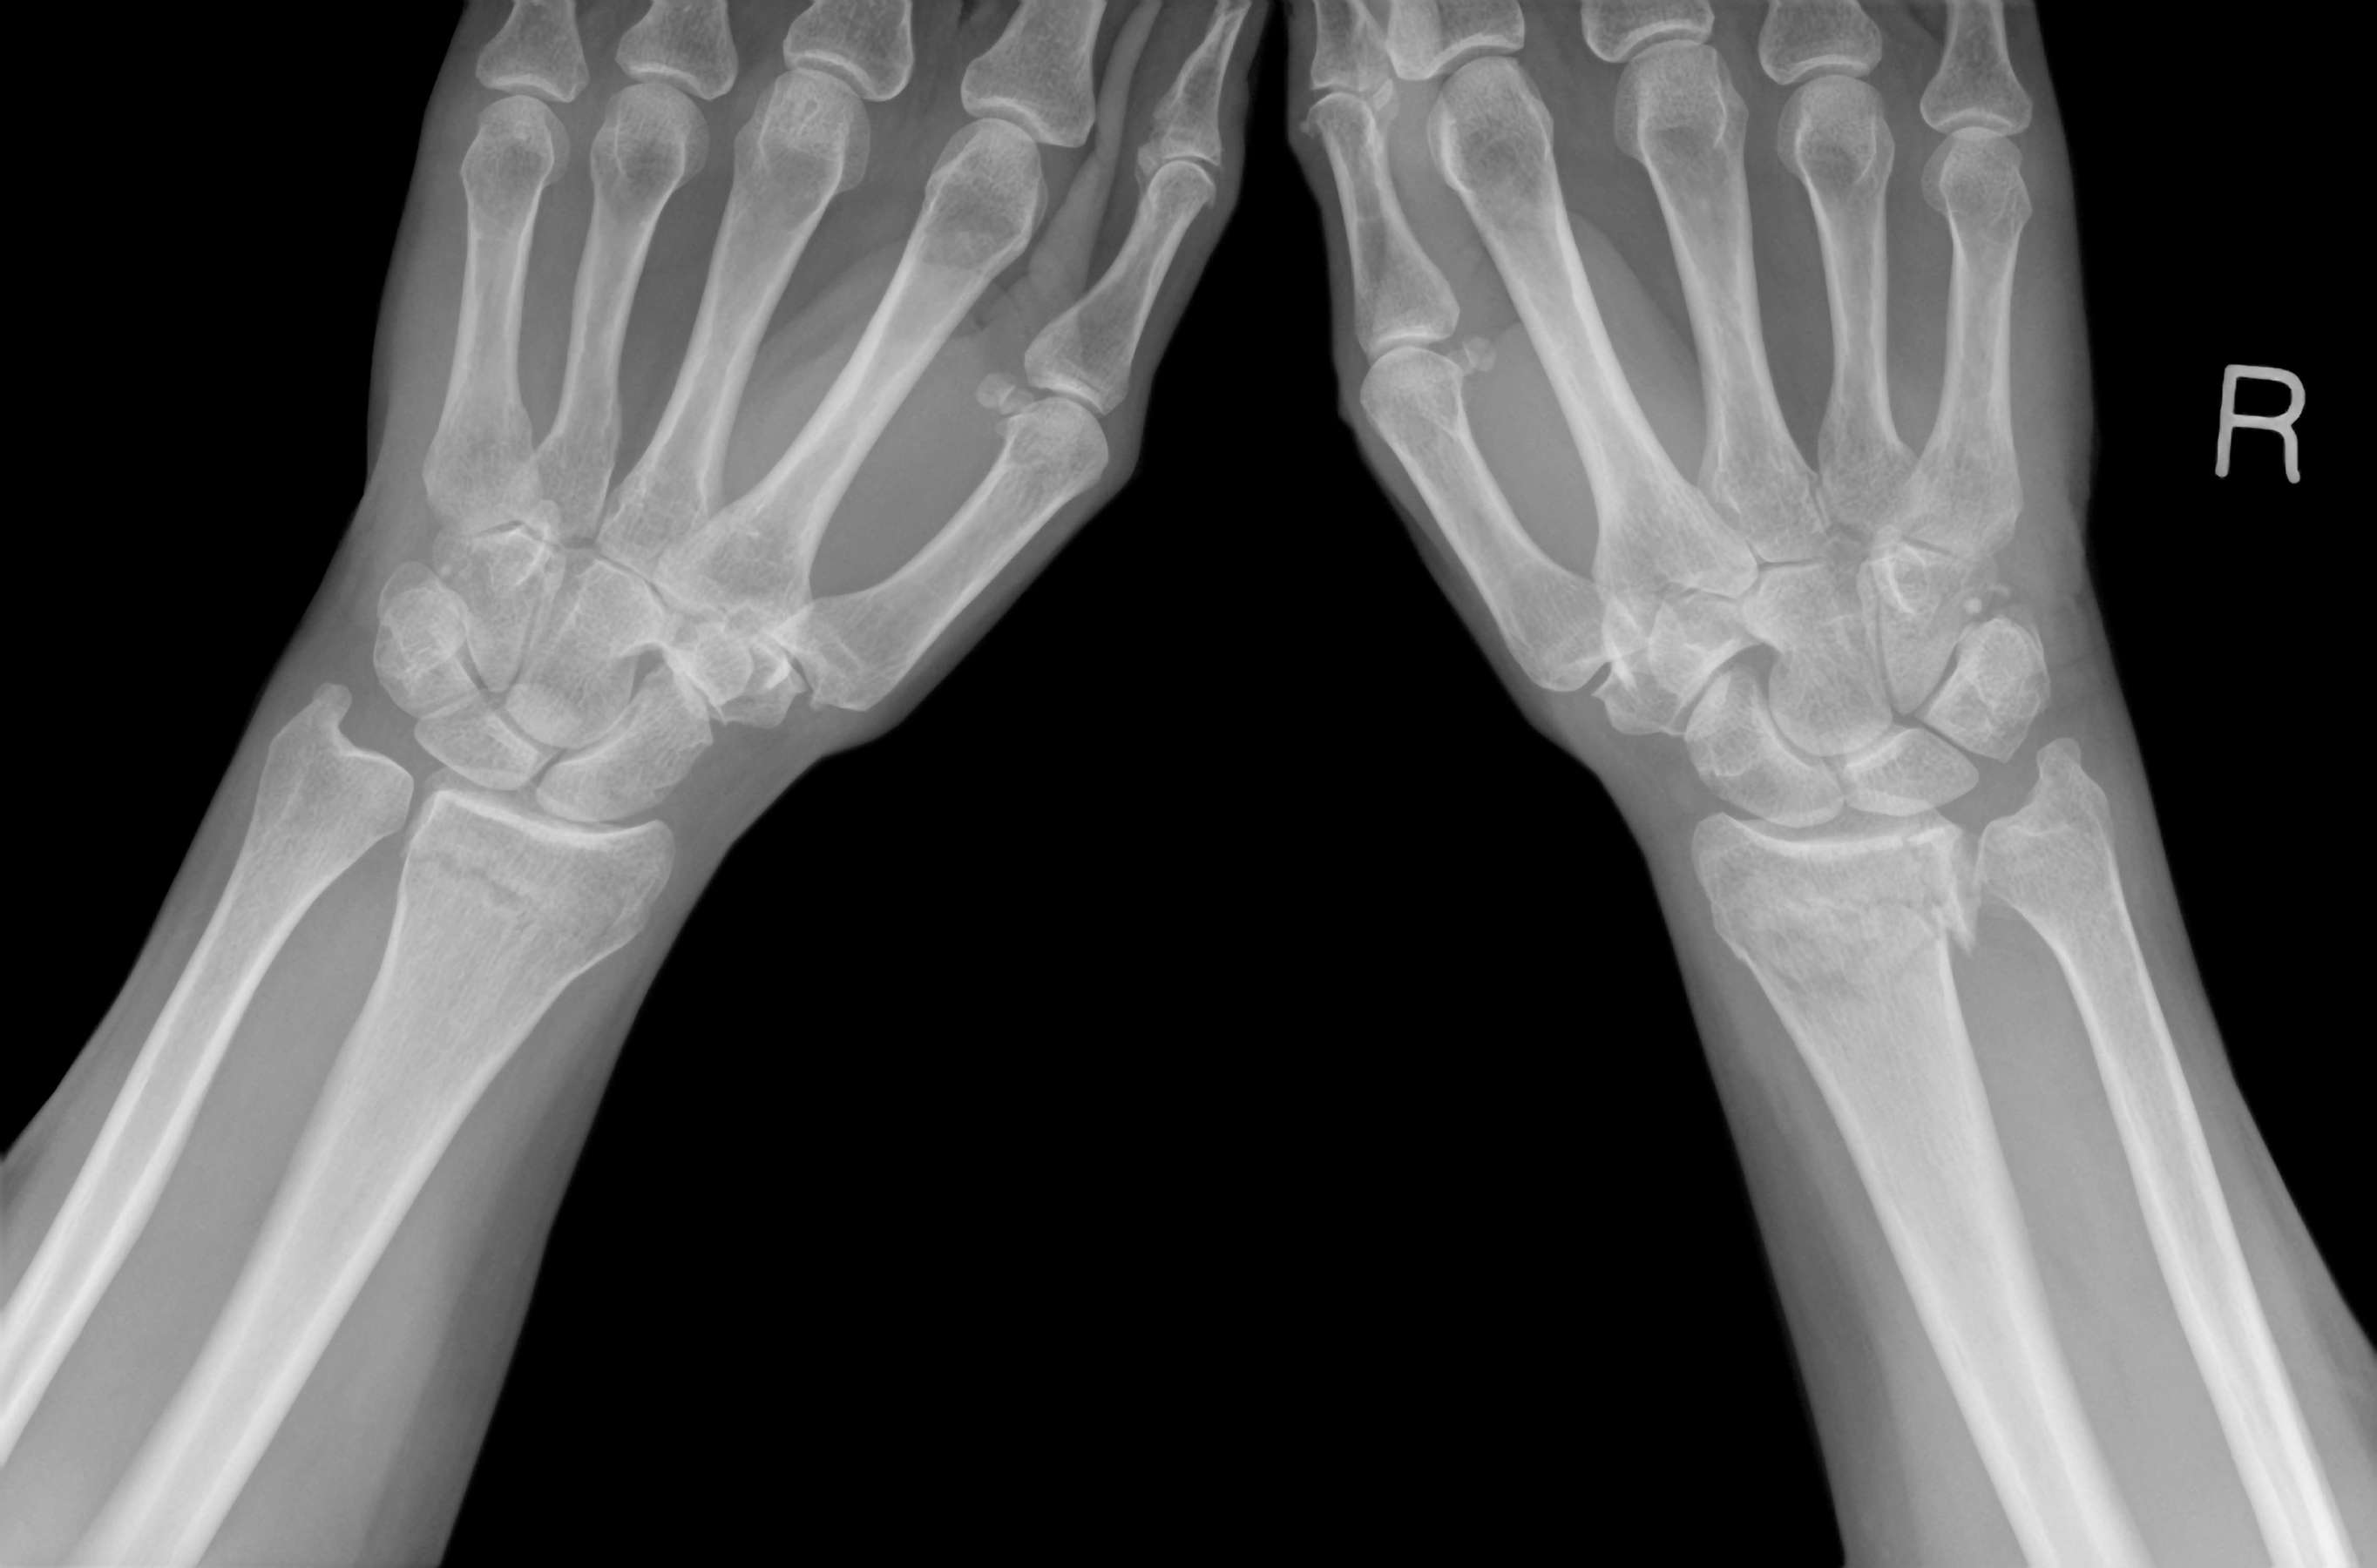 Colles fracture xray